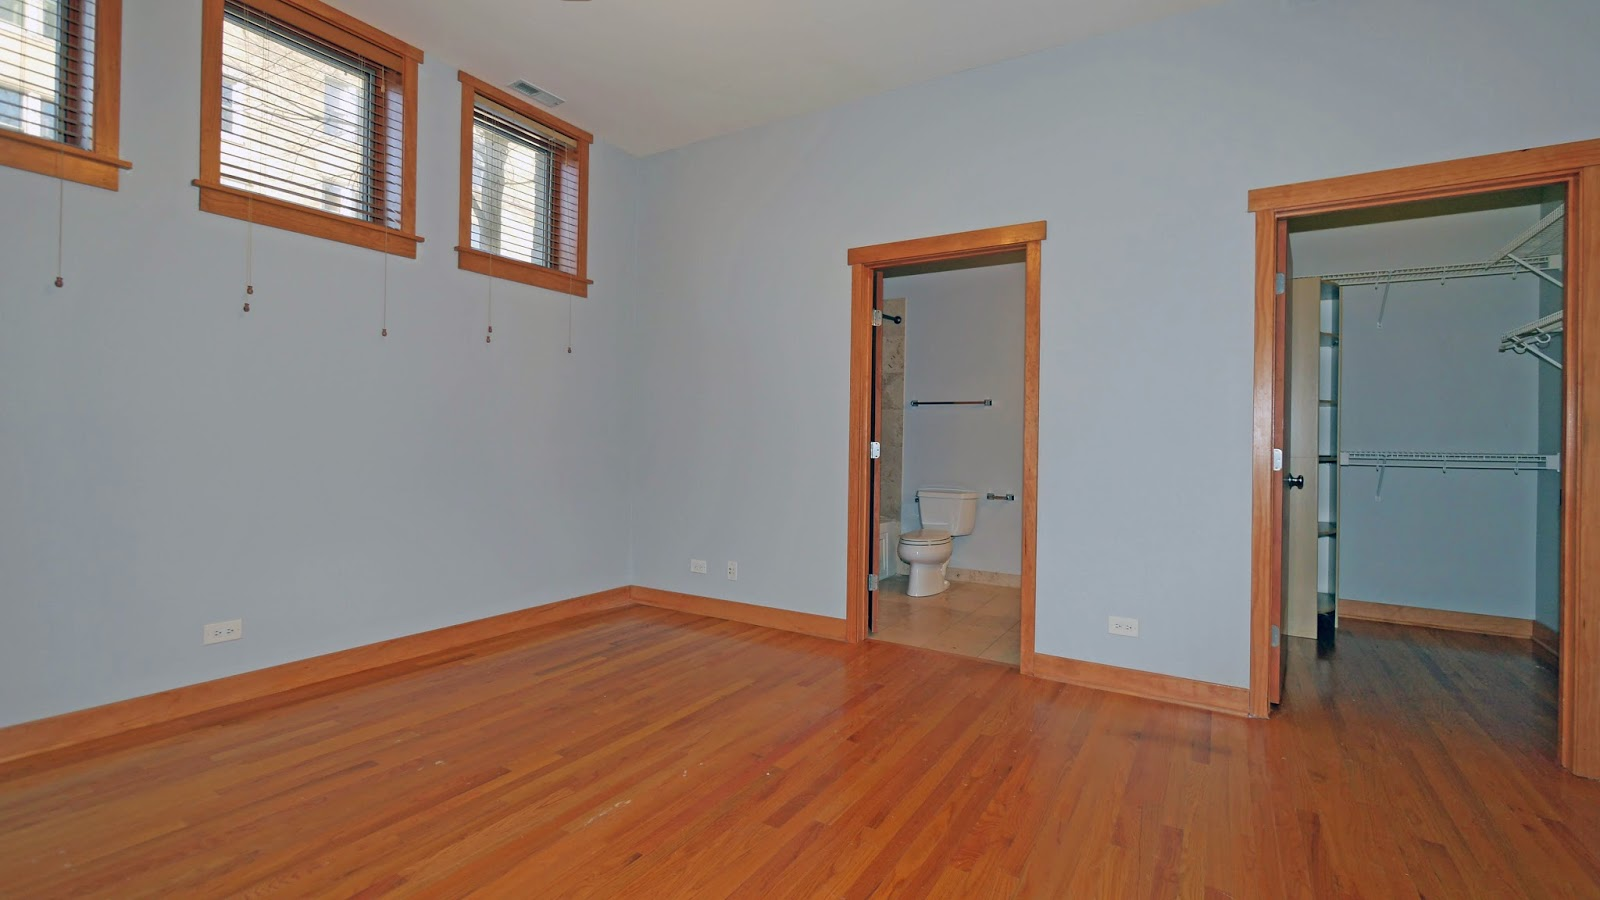 The Chicago Real Estate Local For Rent Newer Construction 3 Beds 2 Baths With Parking At 2623